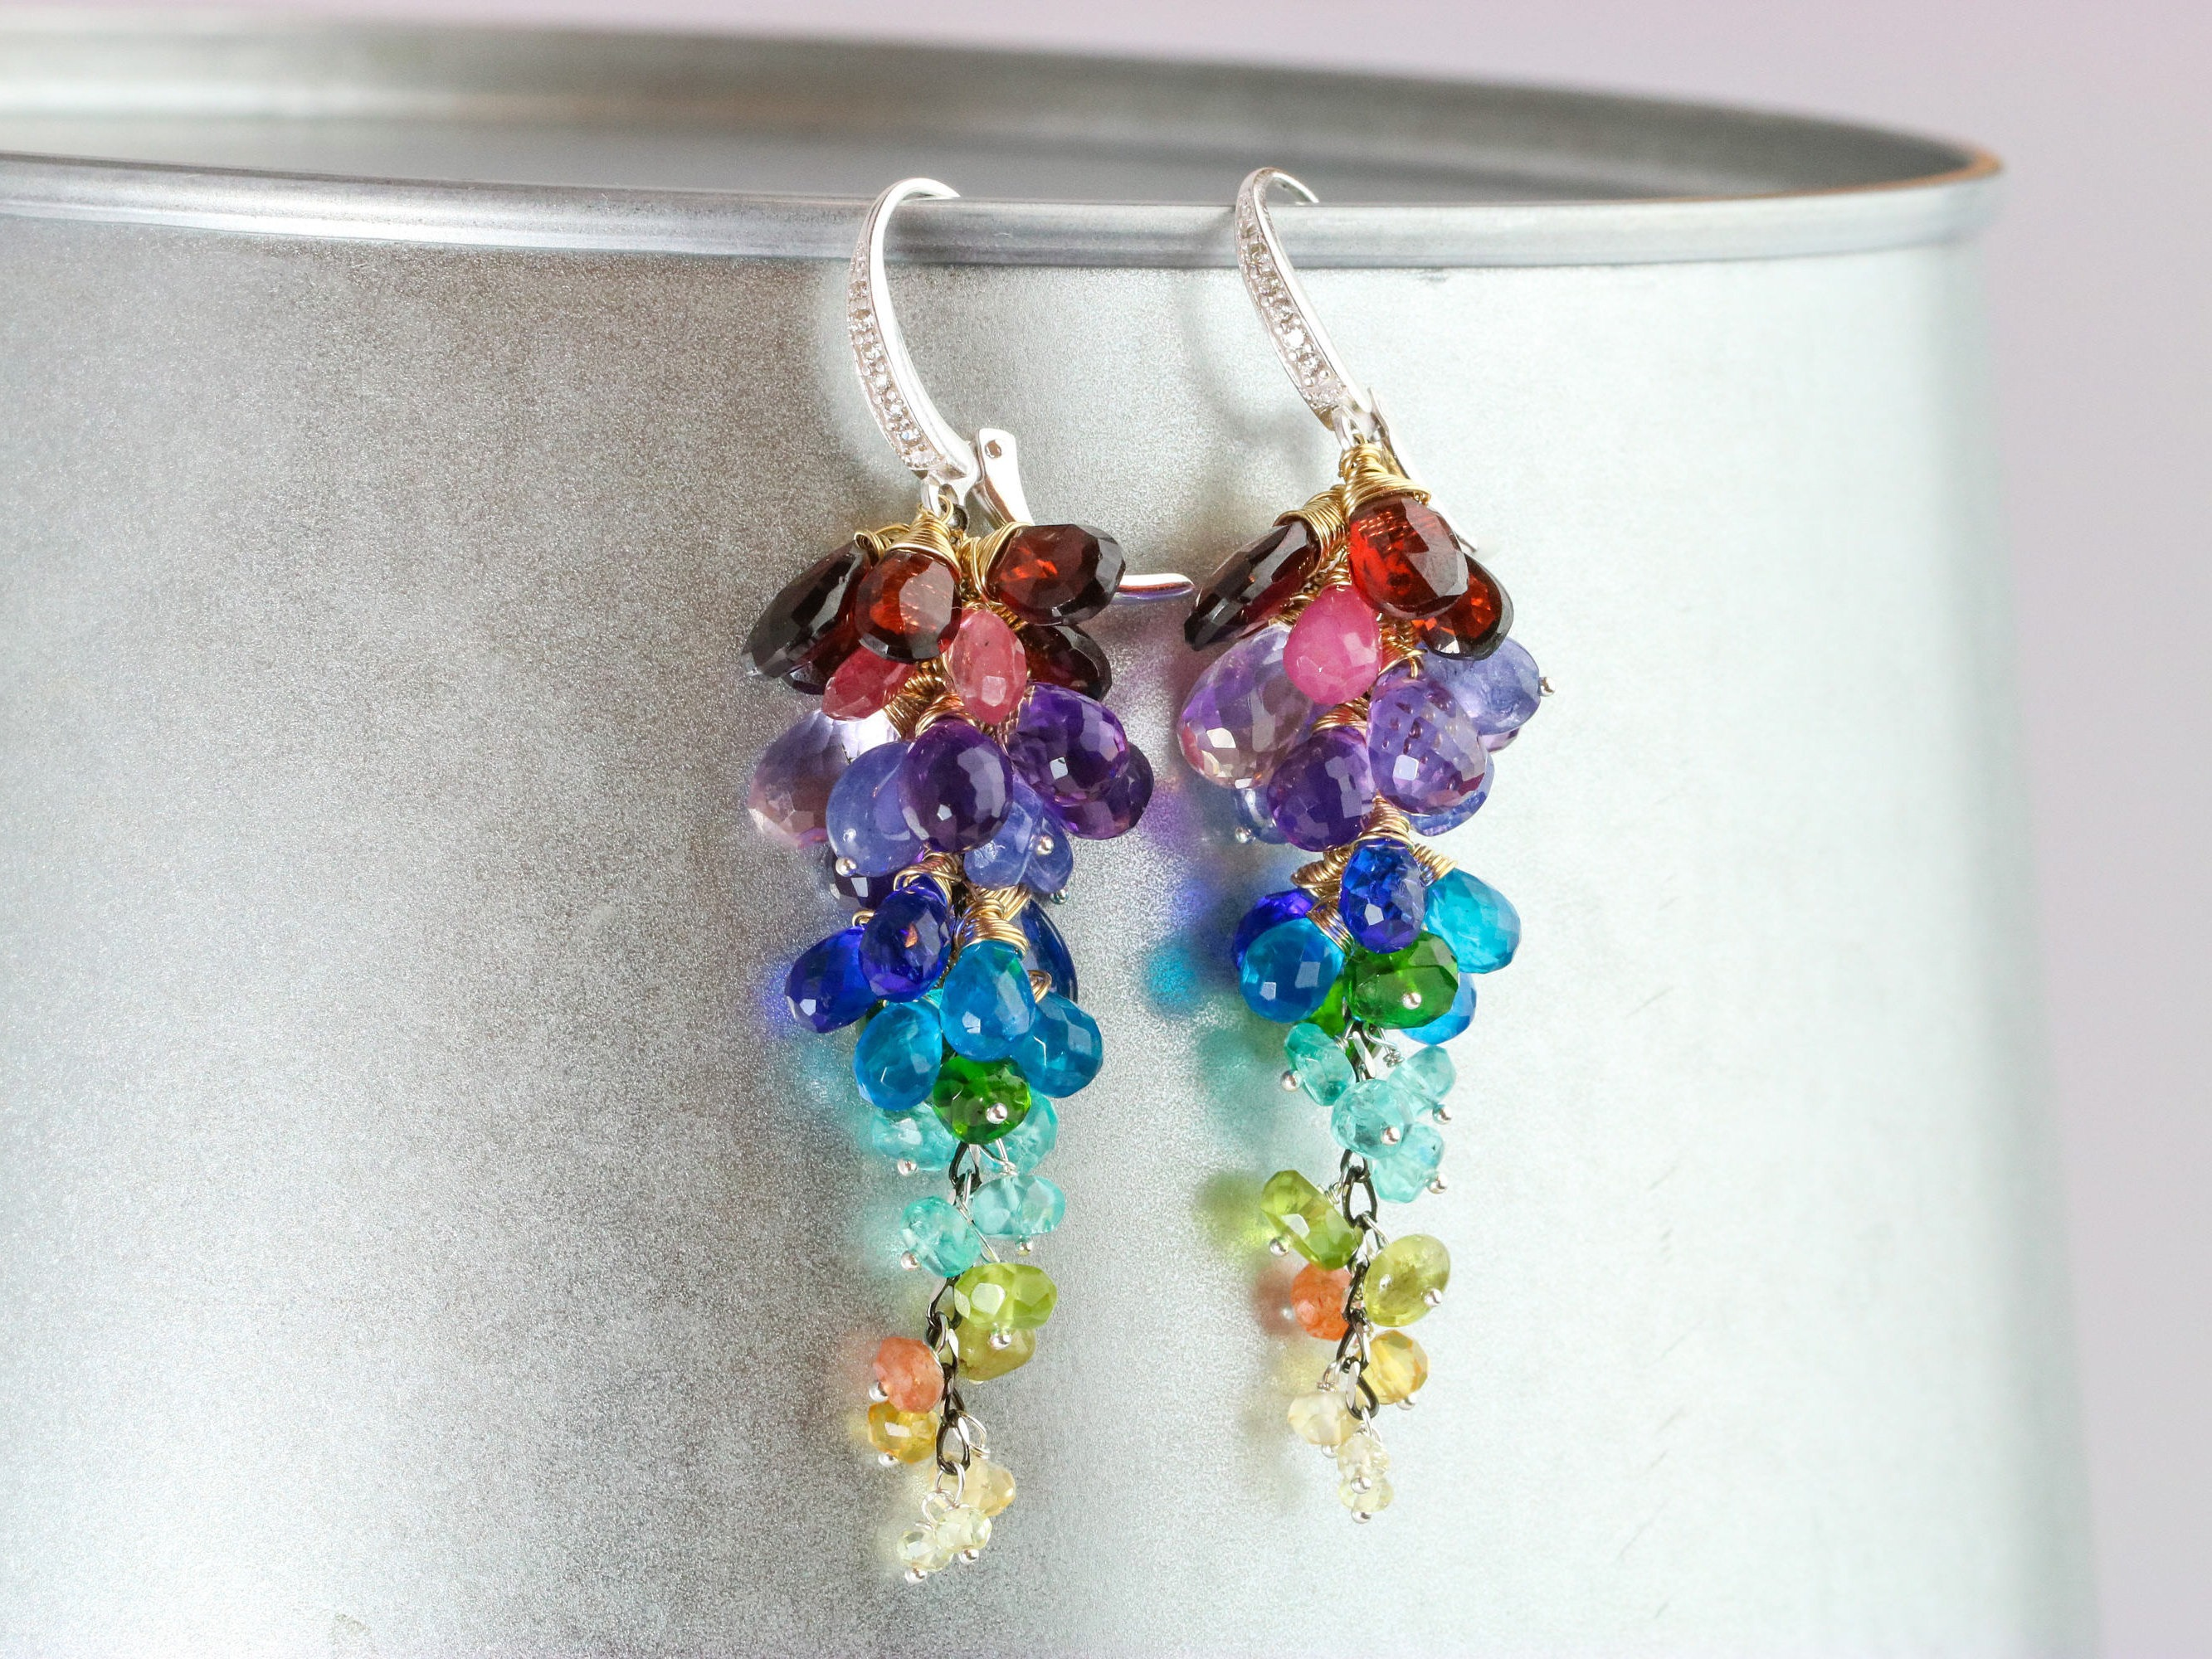 on mesh s chain us claire rainbow earrings clip